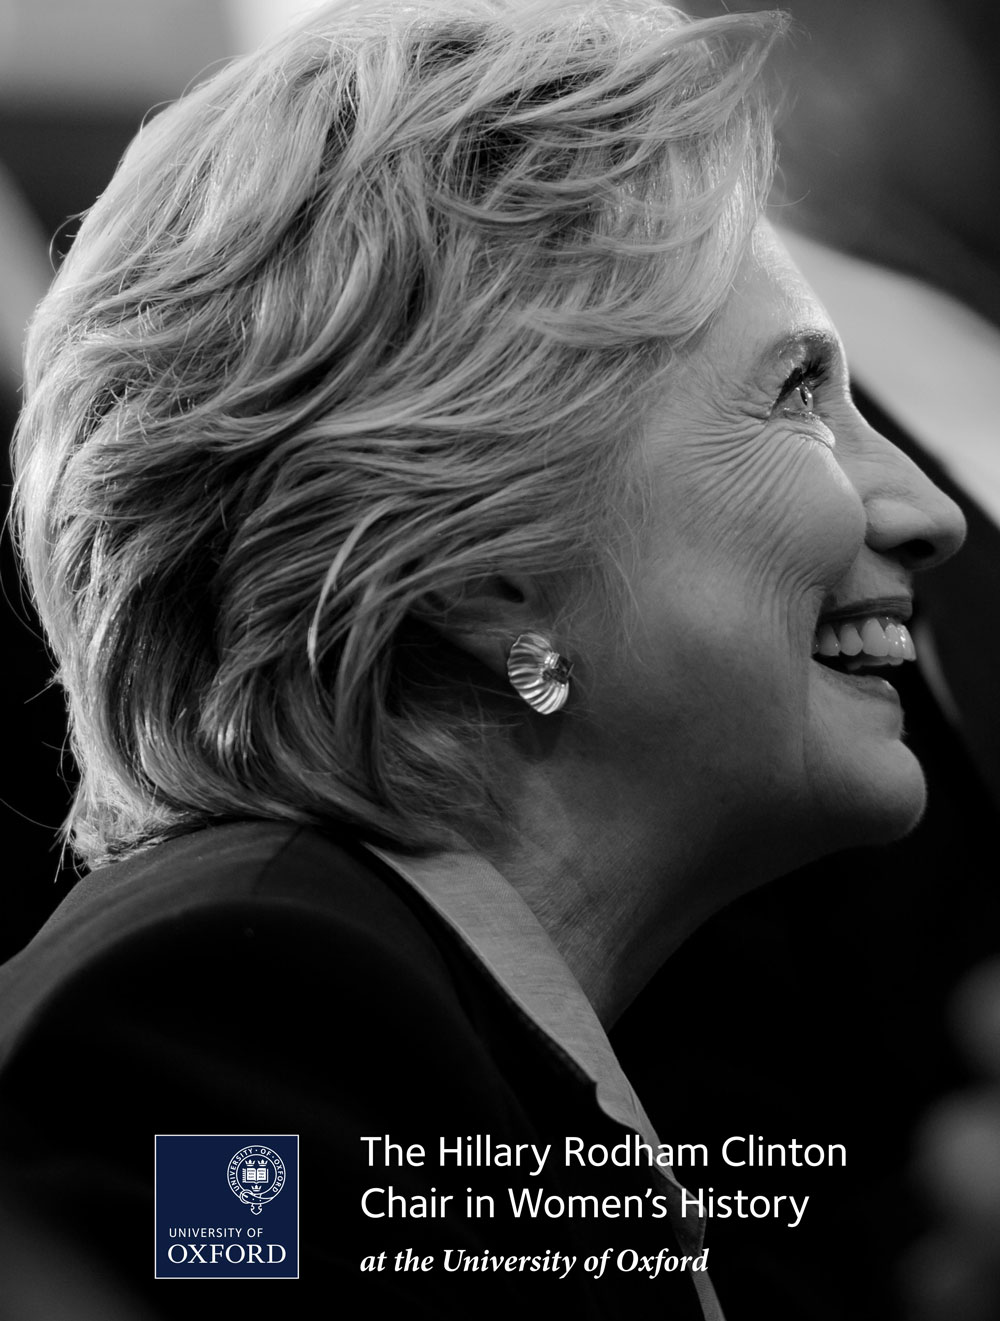 The Hillary Rodham Clinton Chair in Women's History, brochure design